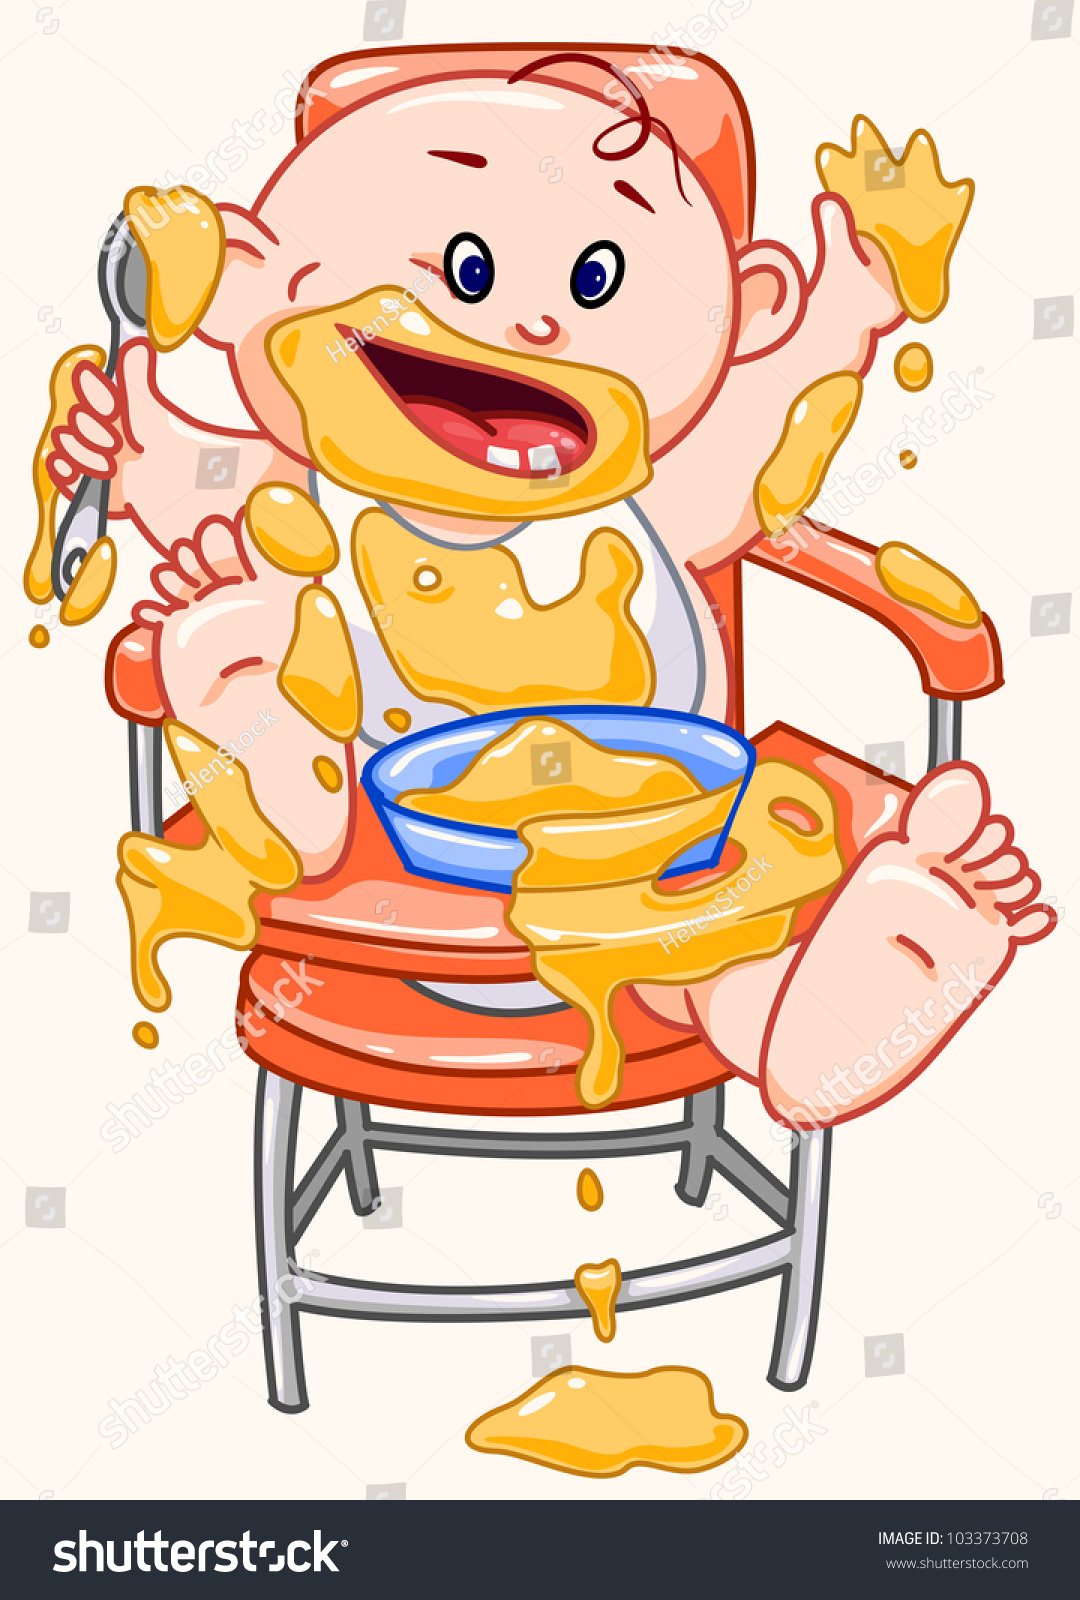 baby eating clipart - photo #10